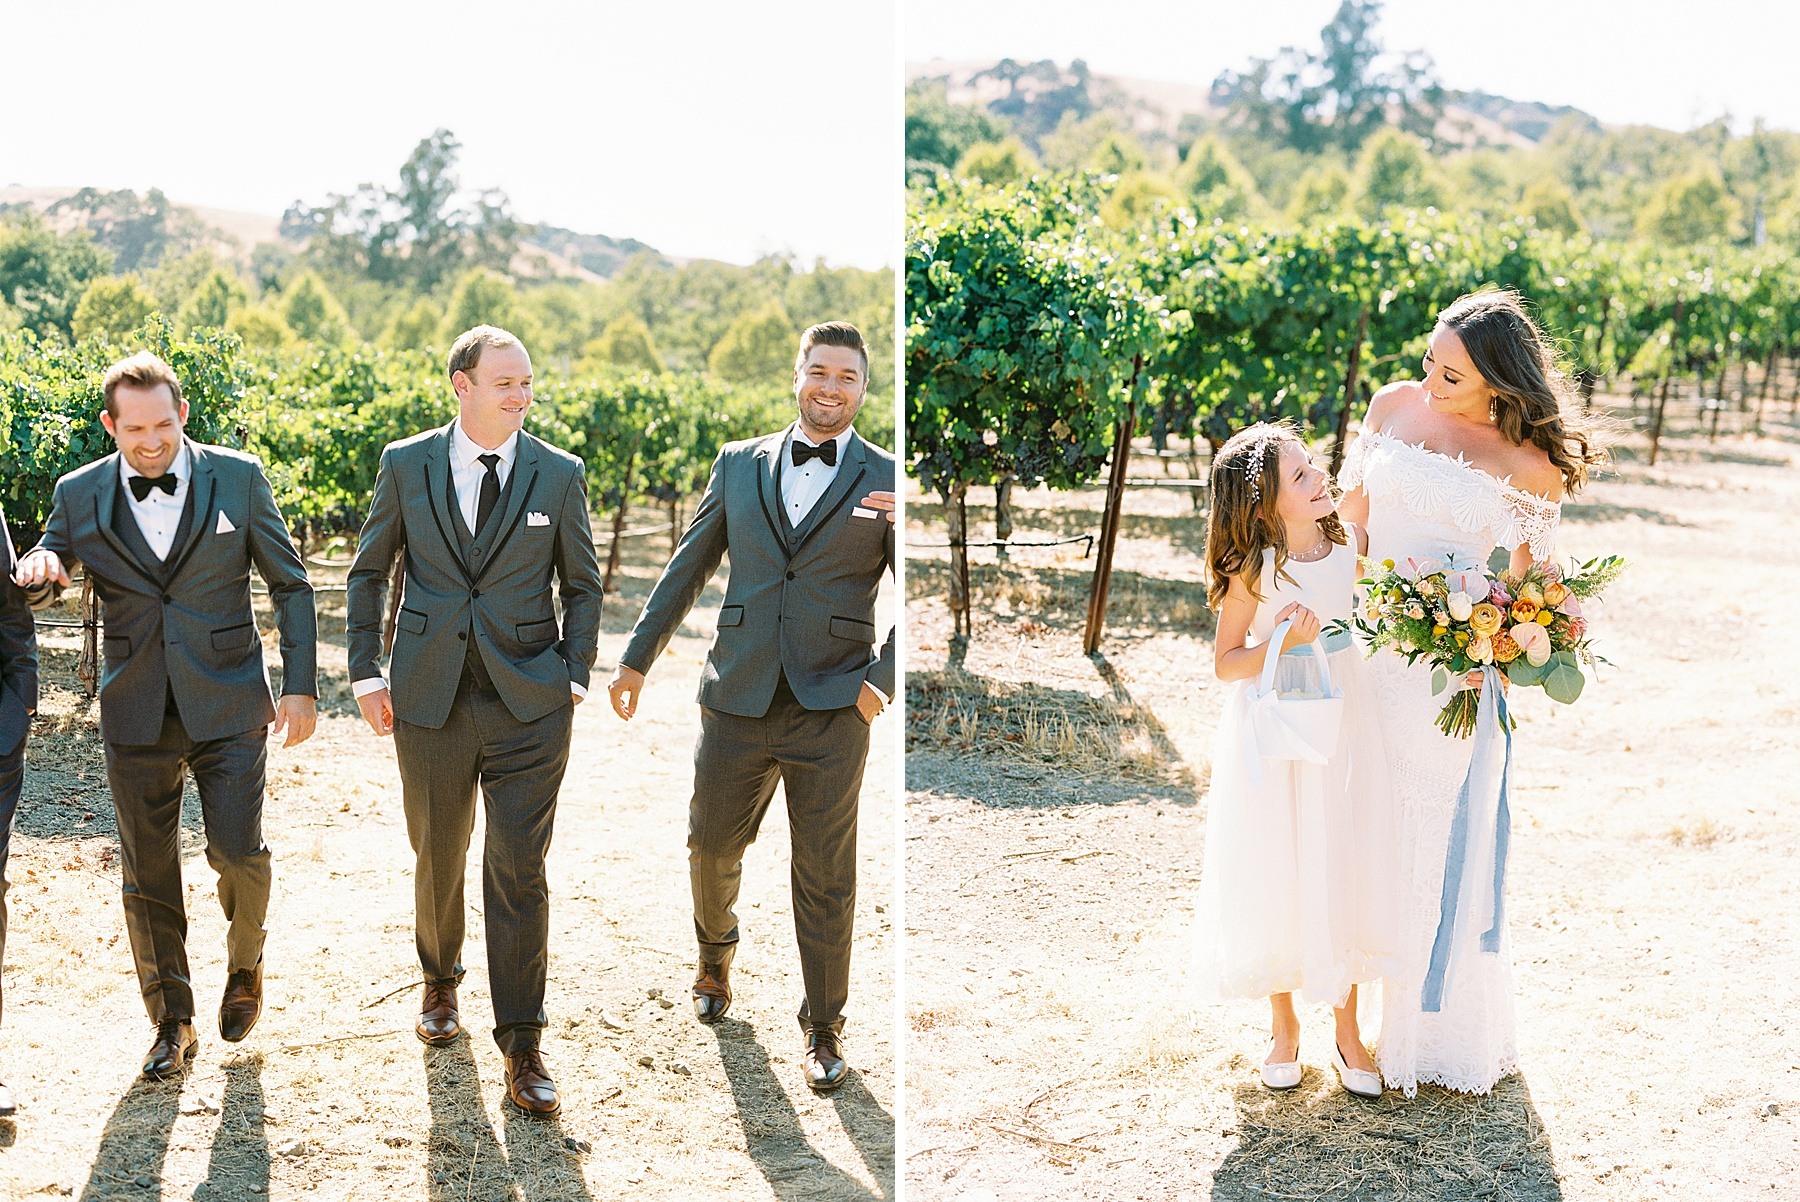 Wente Wedding with A Tropical Color Palette - Ashley & Mike - Featured on Inspired by This - Ashley Baumgartner_0041.jpg